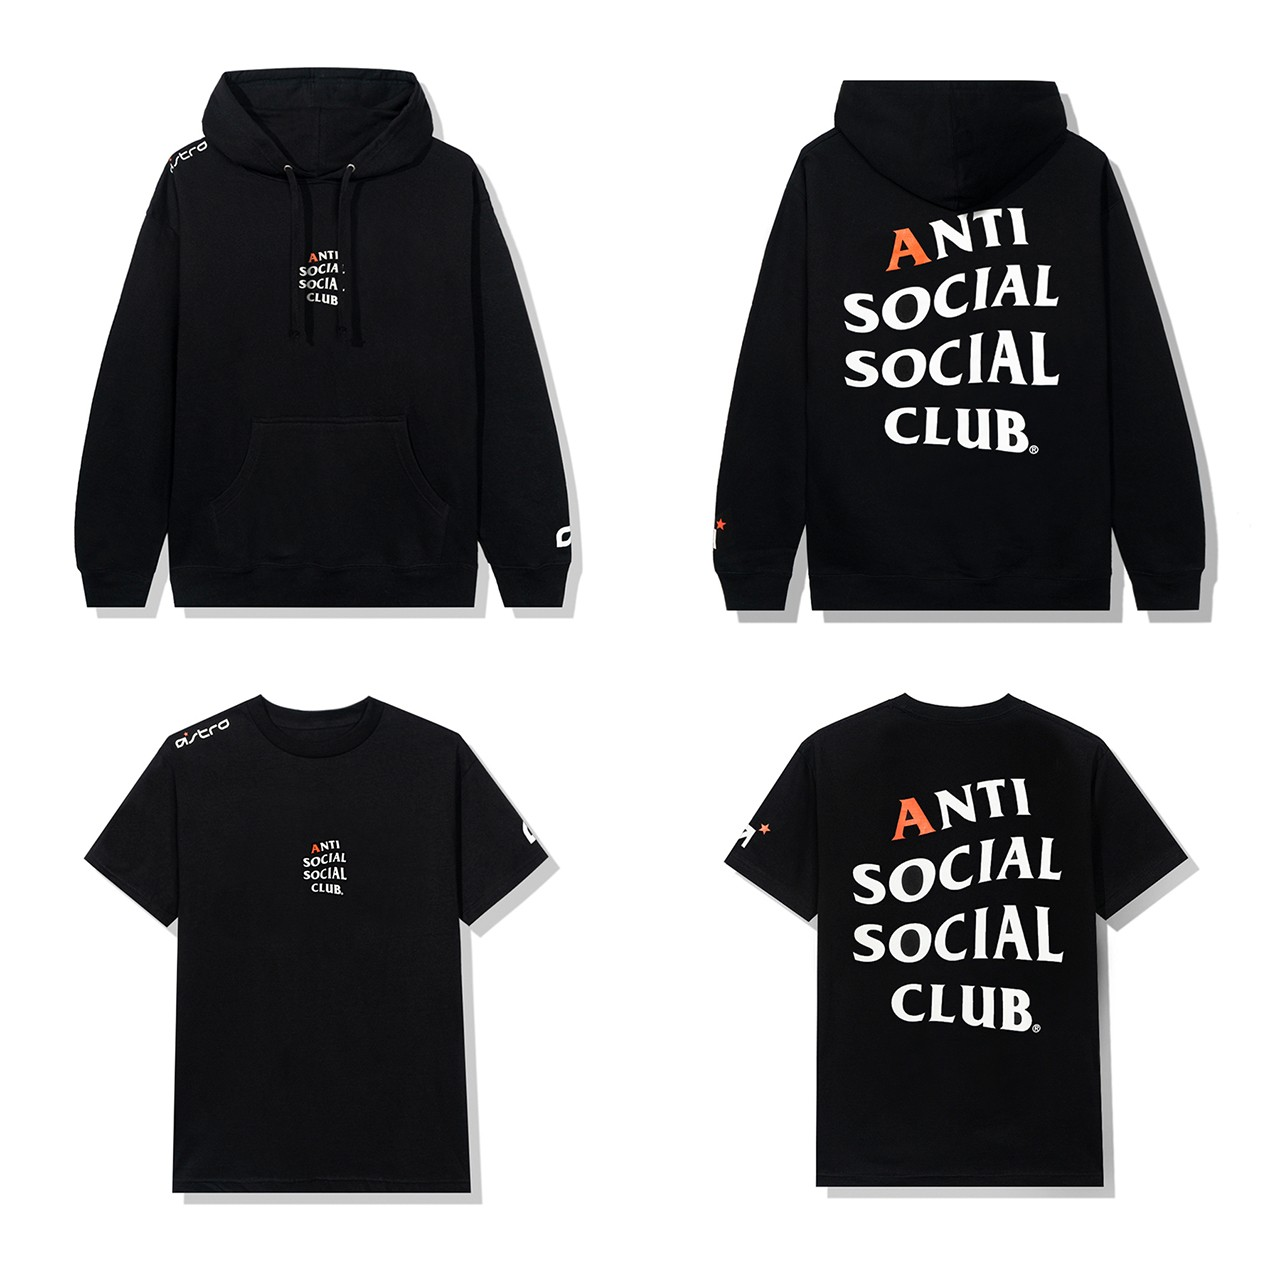 Anti Social Social Club FW20 Collection Lookbook fall winter 2020 out of control clothing hoodie release date info buy